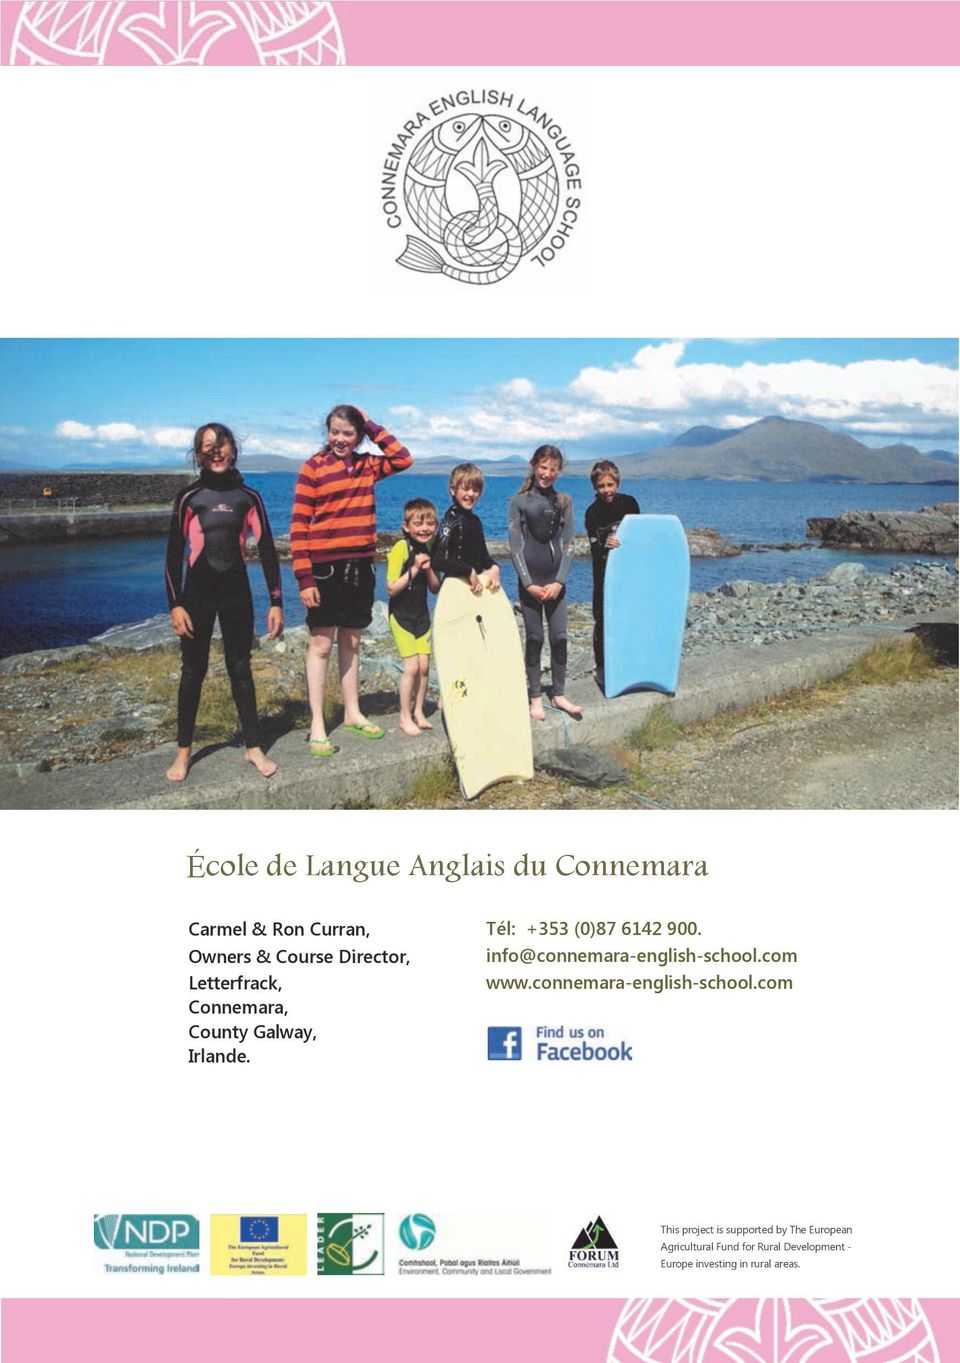 info@connemara-english-school.